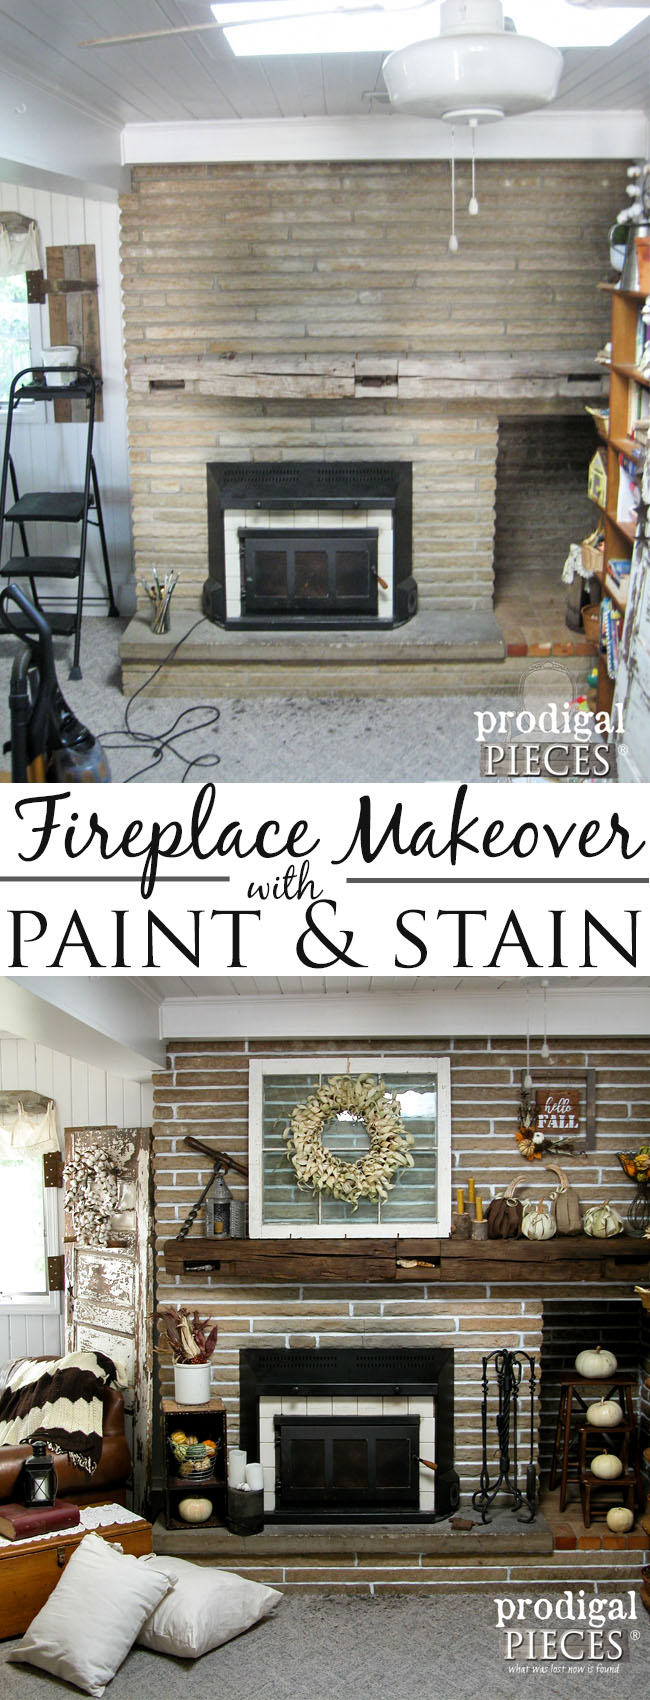 Farmhouse Fireplace Mantel Makeover with Paint & Stain by Prodigal Pieces | www.prodigalpieces.com